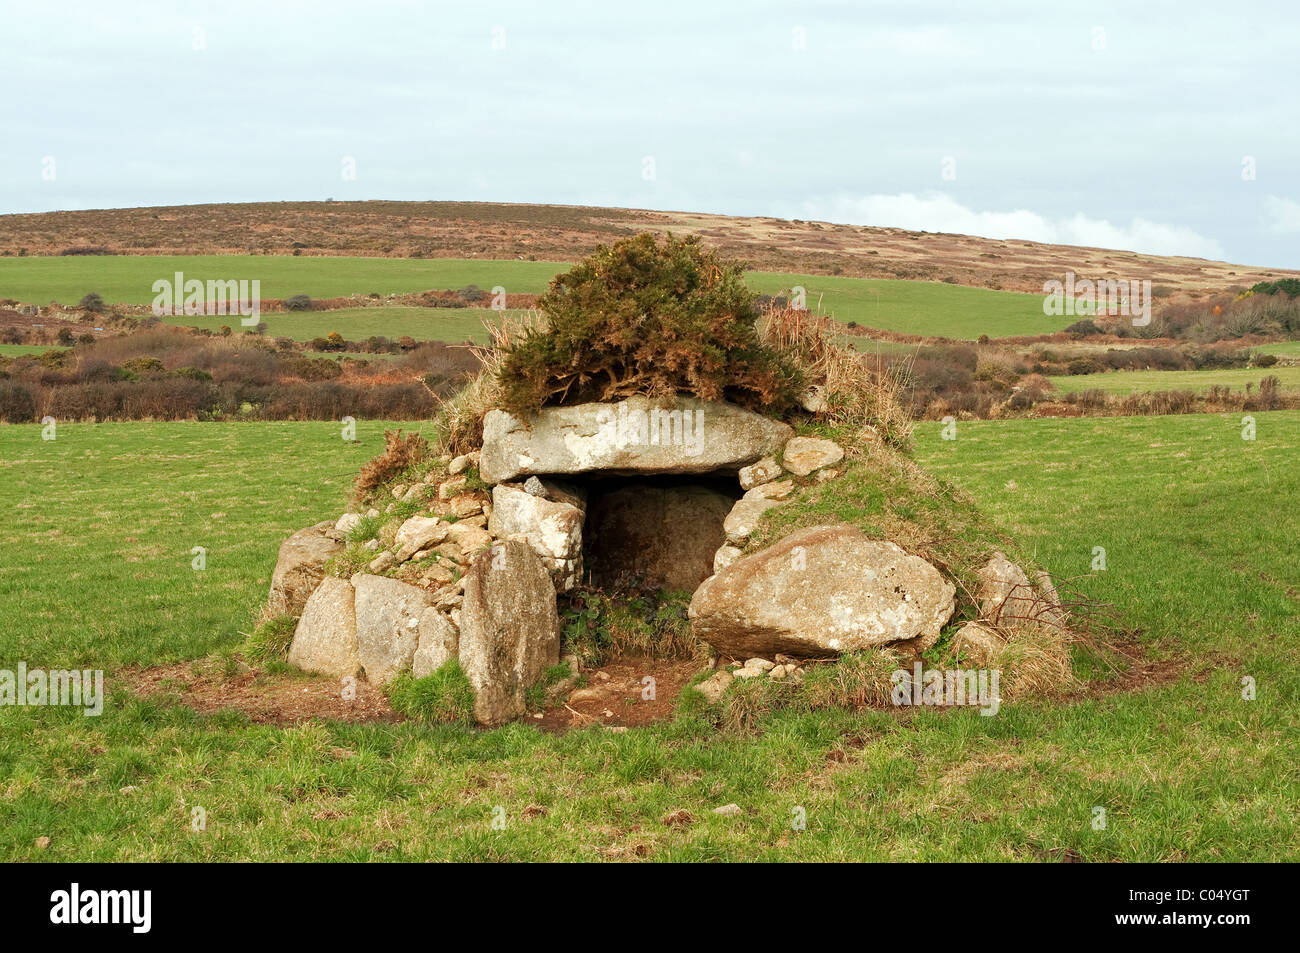 ' Brane Barrow ' an ancient pagan burial chamber, near the hamlet of sancreed in west cornwall, uk - Stock Image